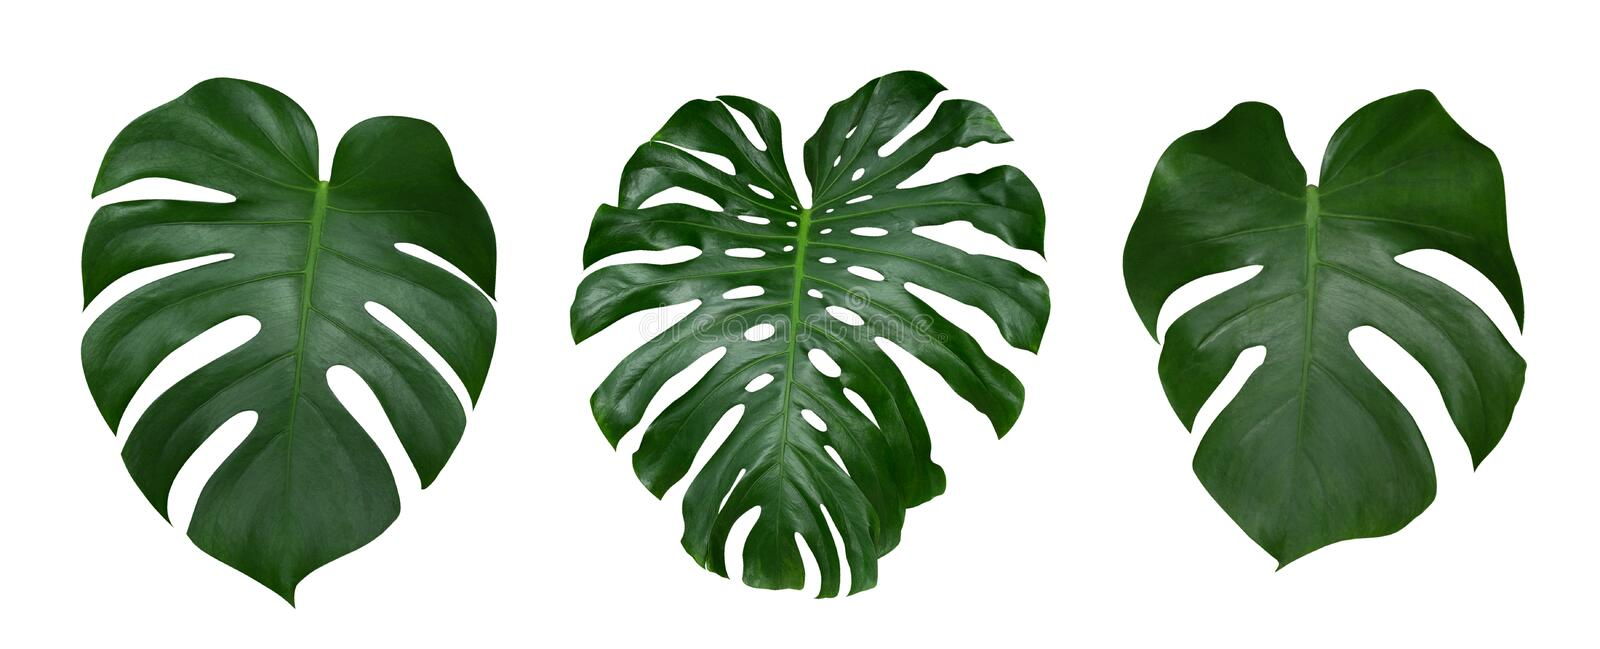 Download Monstera Plant Leaves, The Tropical Evergreen Vine Isolated On White Background, Path Stock Image - Image of green, growth: 98256559